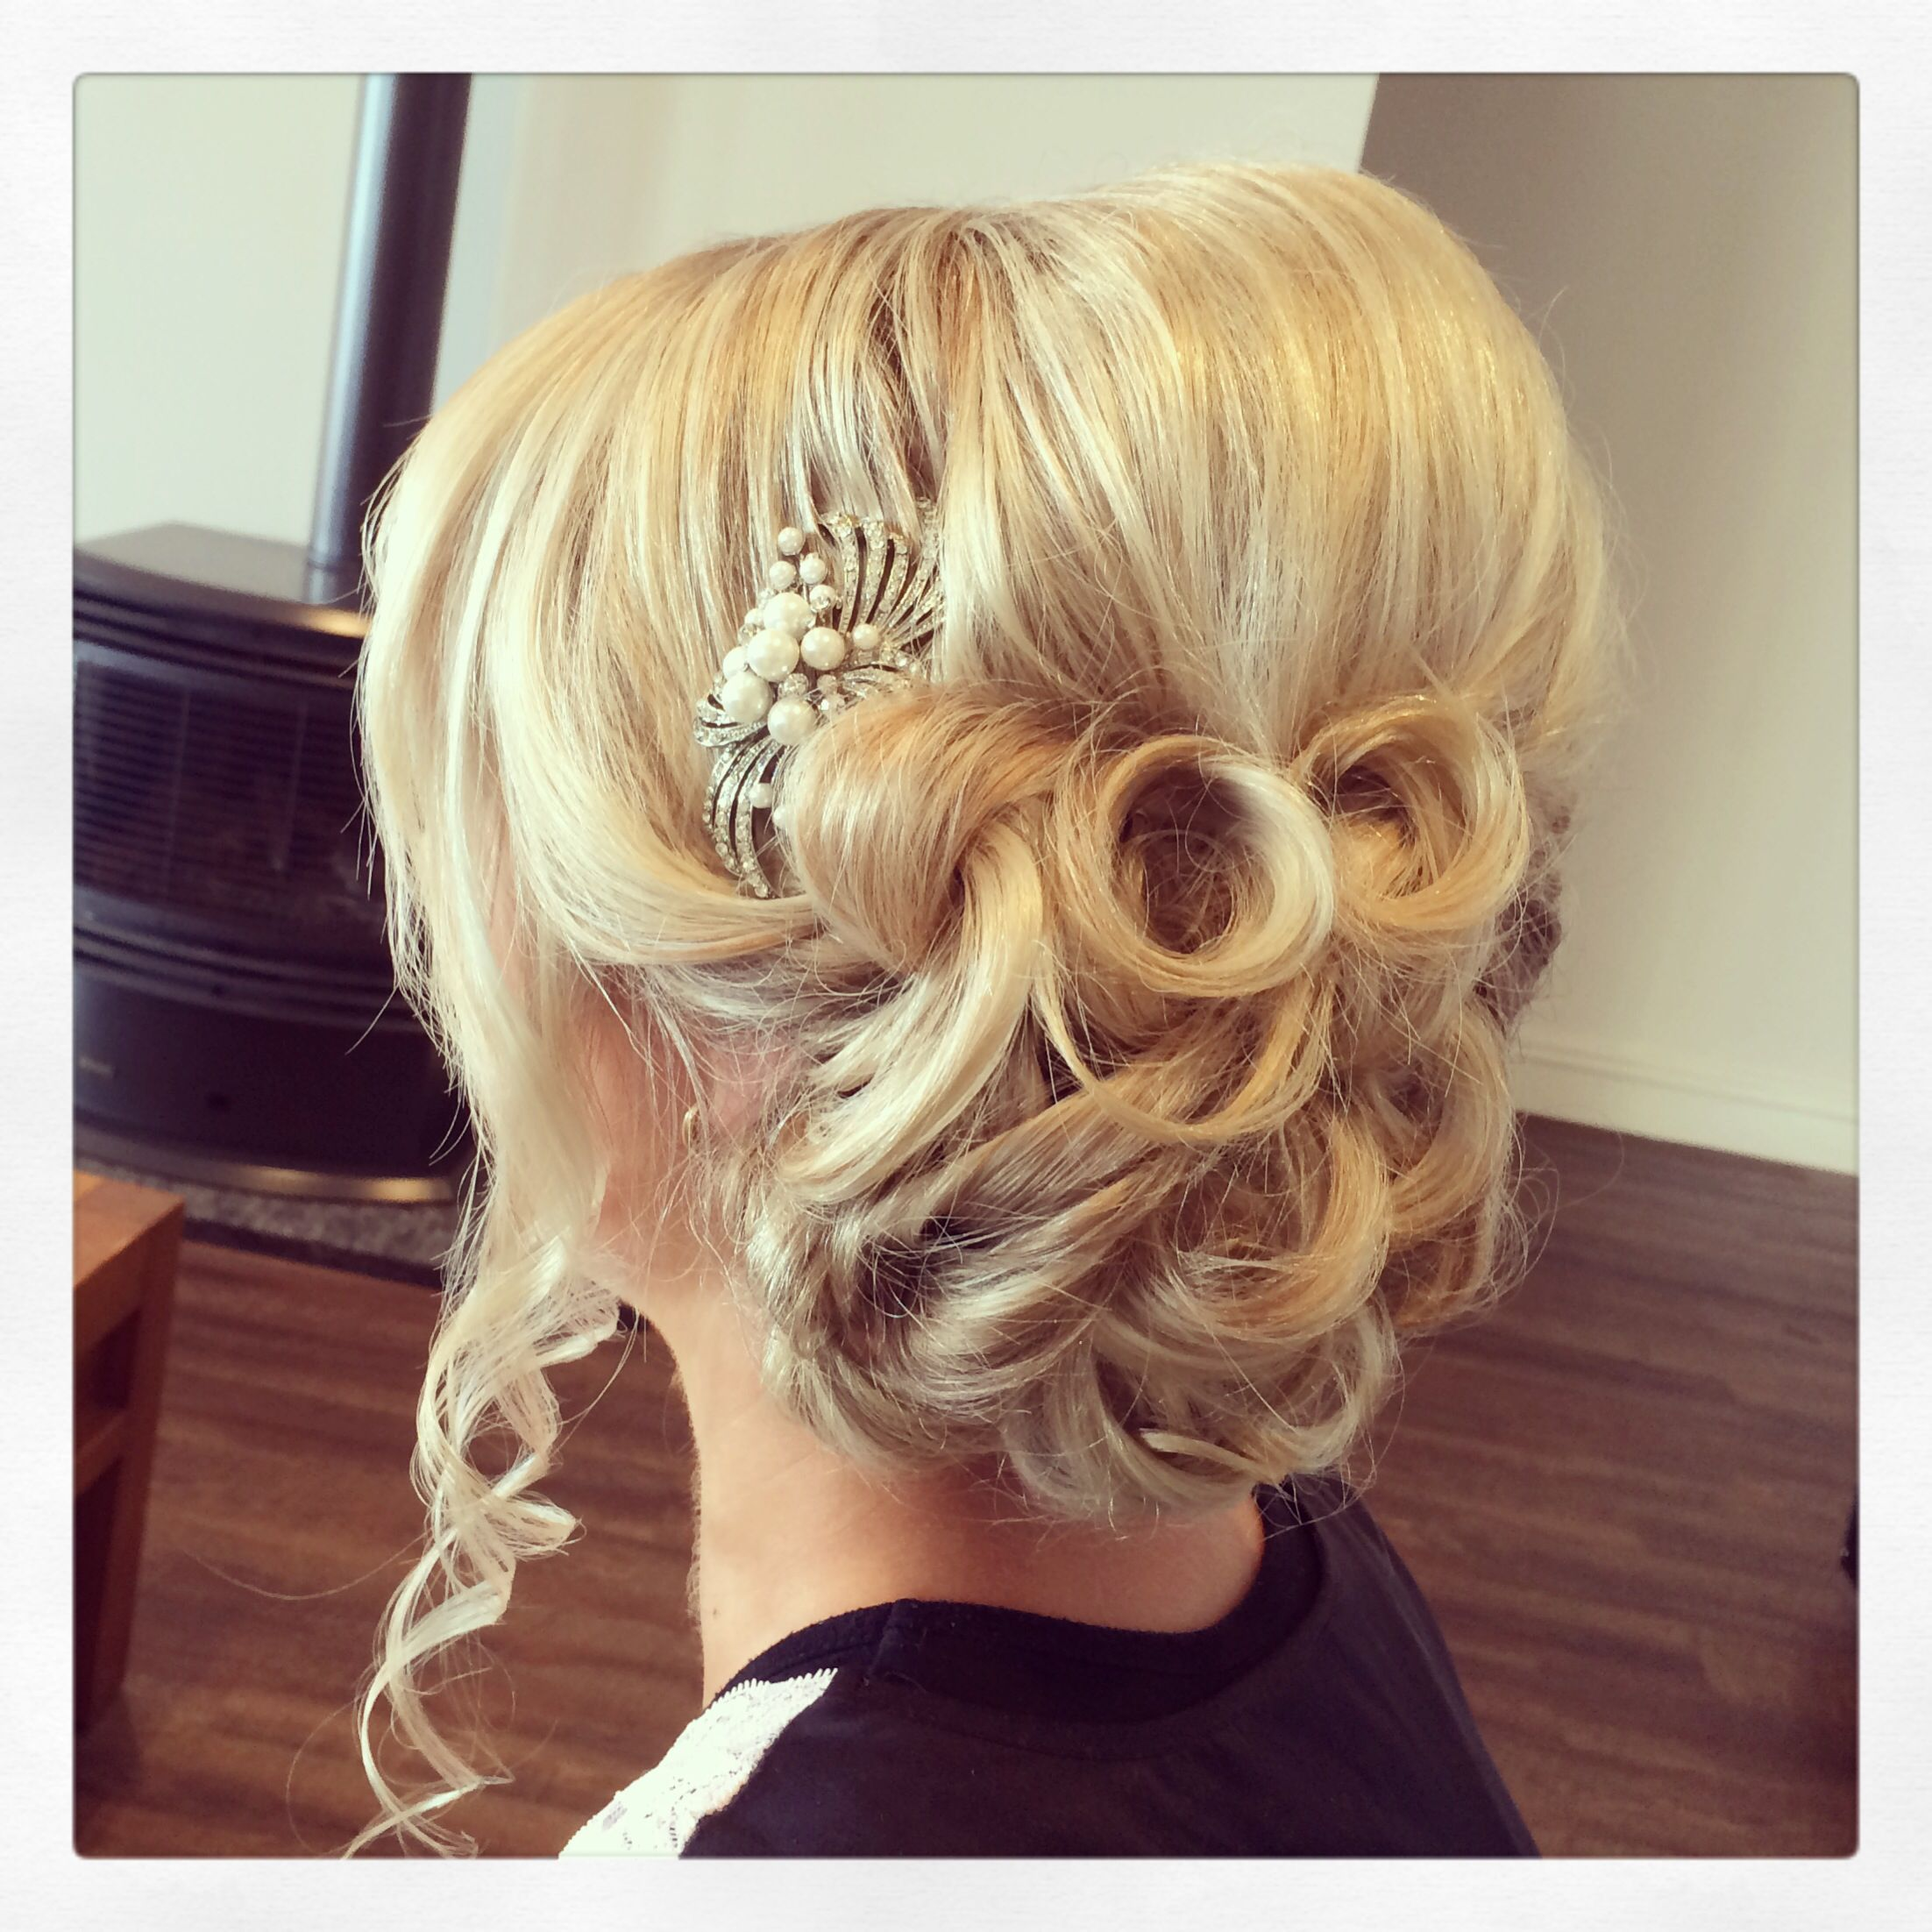 Soft bridal upstyle @coastalstylemobilehairdressing (With images) | Down hairstyles, Hair beauty ...